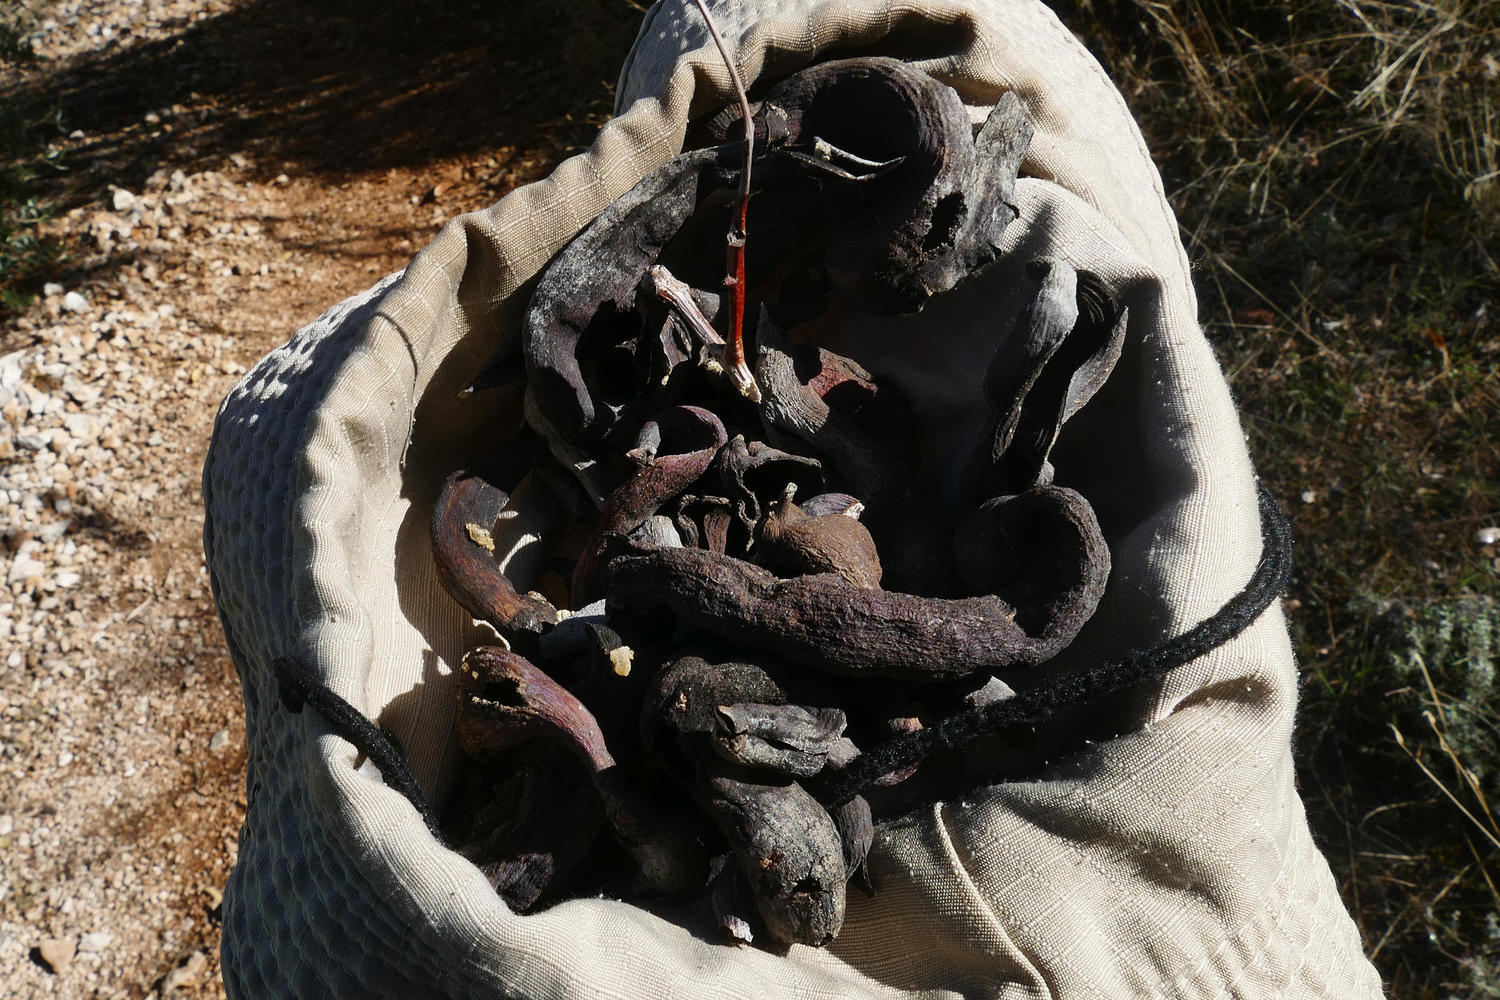 Collecting up dried cornicabras - the 'incienso de campesinos'